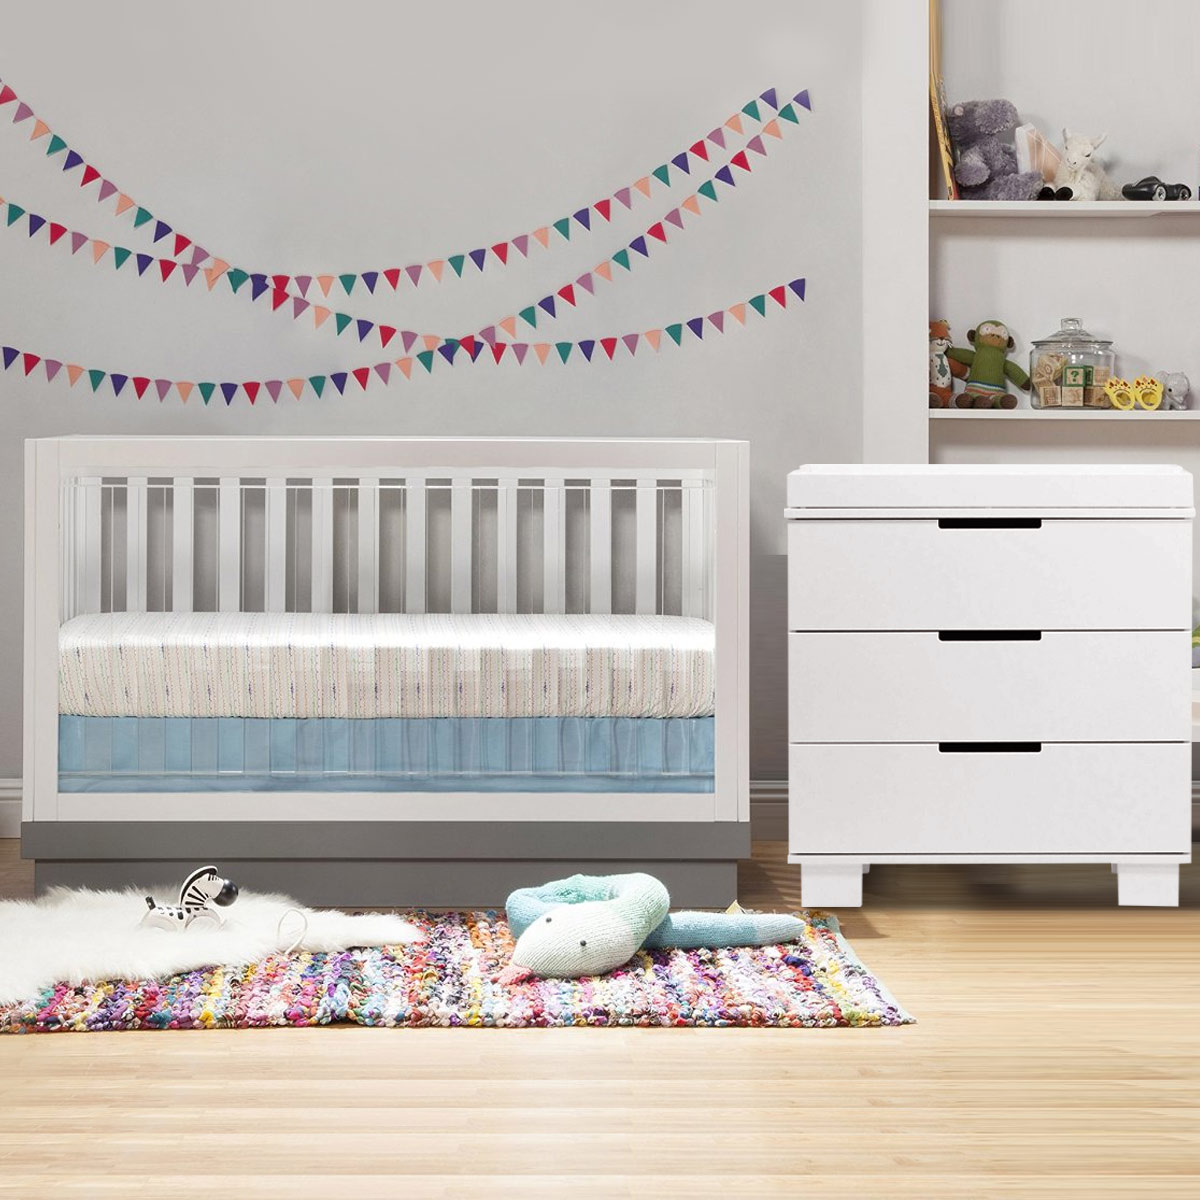 babyletto  piece nursery set  acrylic harlow in convertible crib and modo drawer dresser in white free shipping. babyletto  piece nursery set  acrylic harlow in convertible